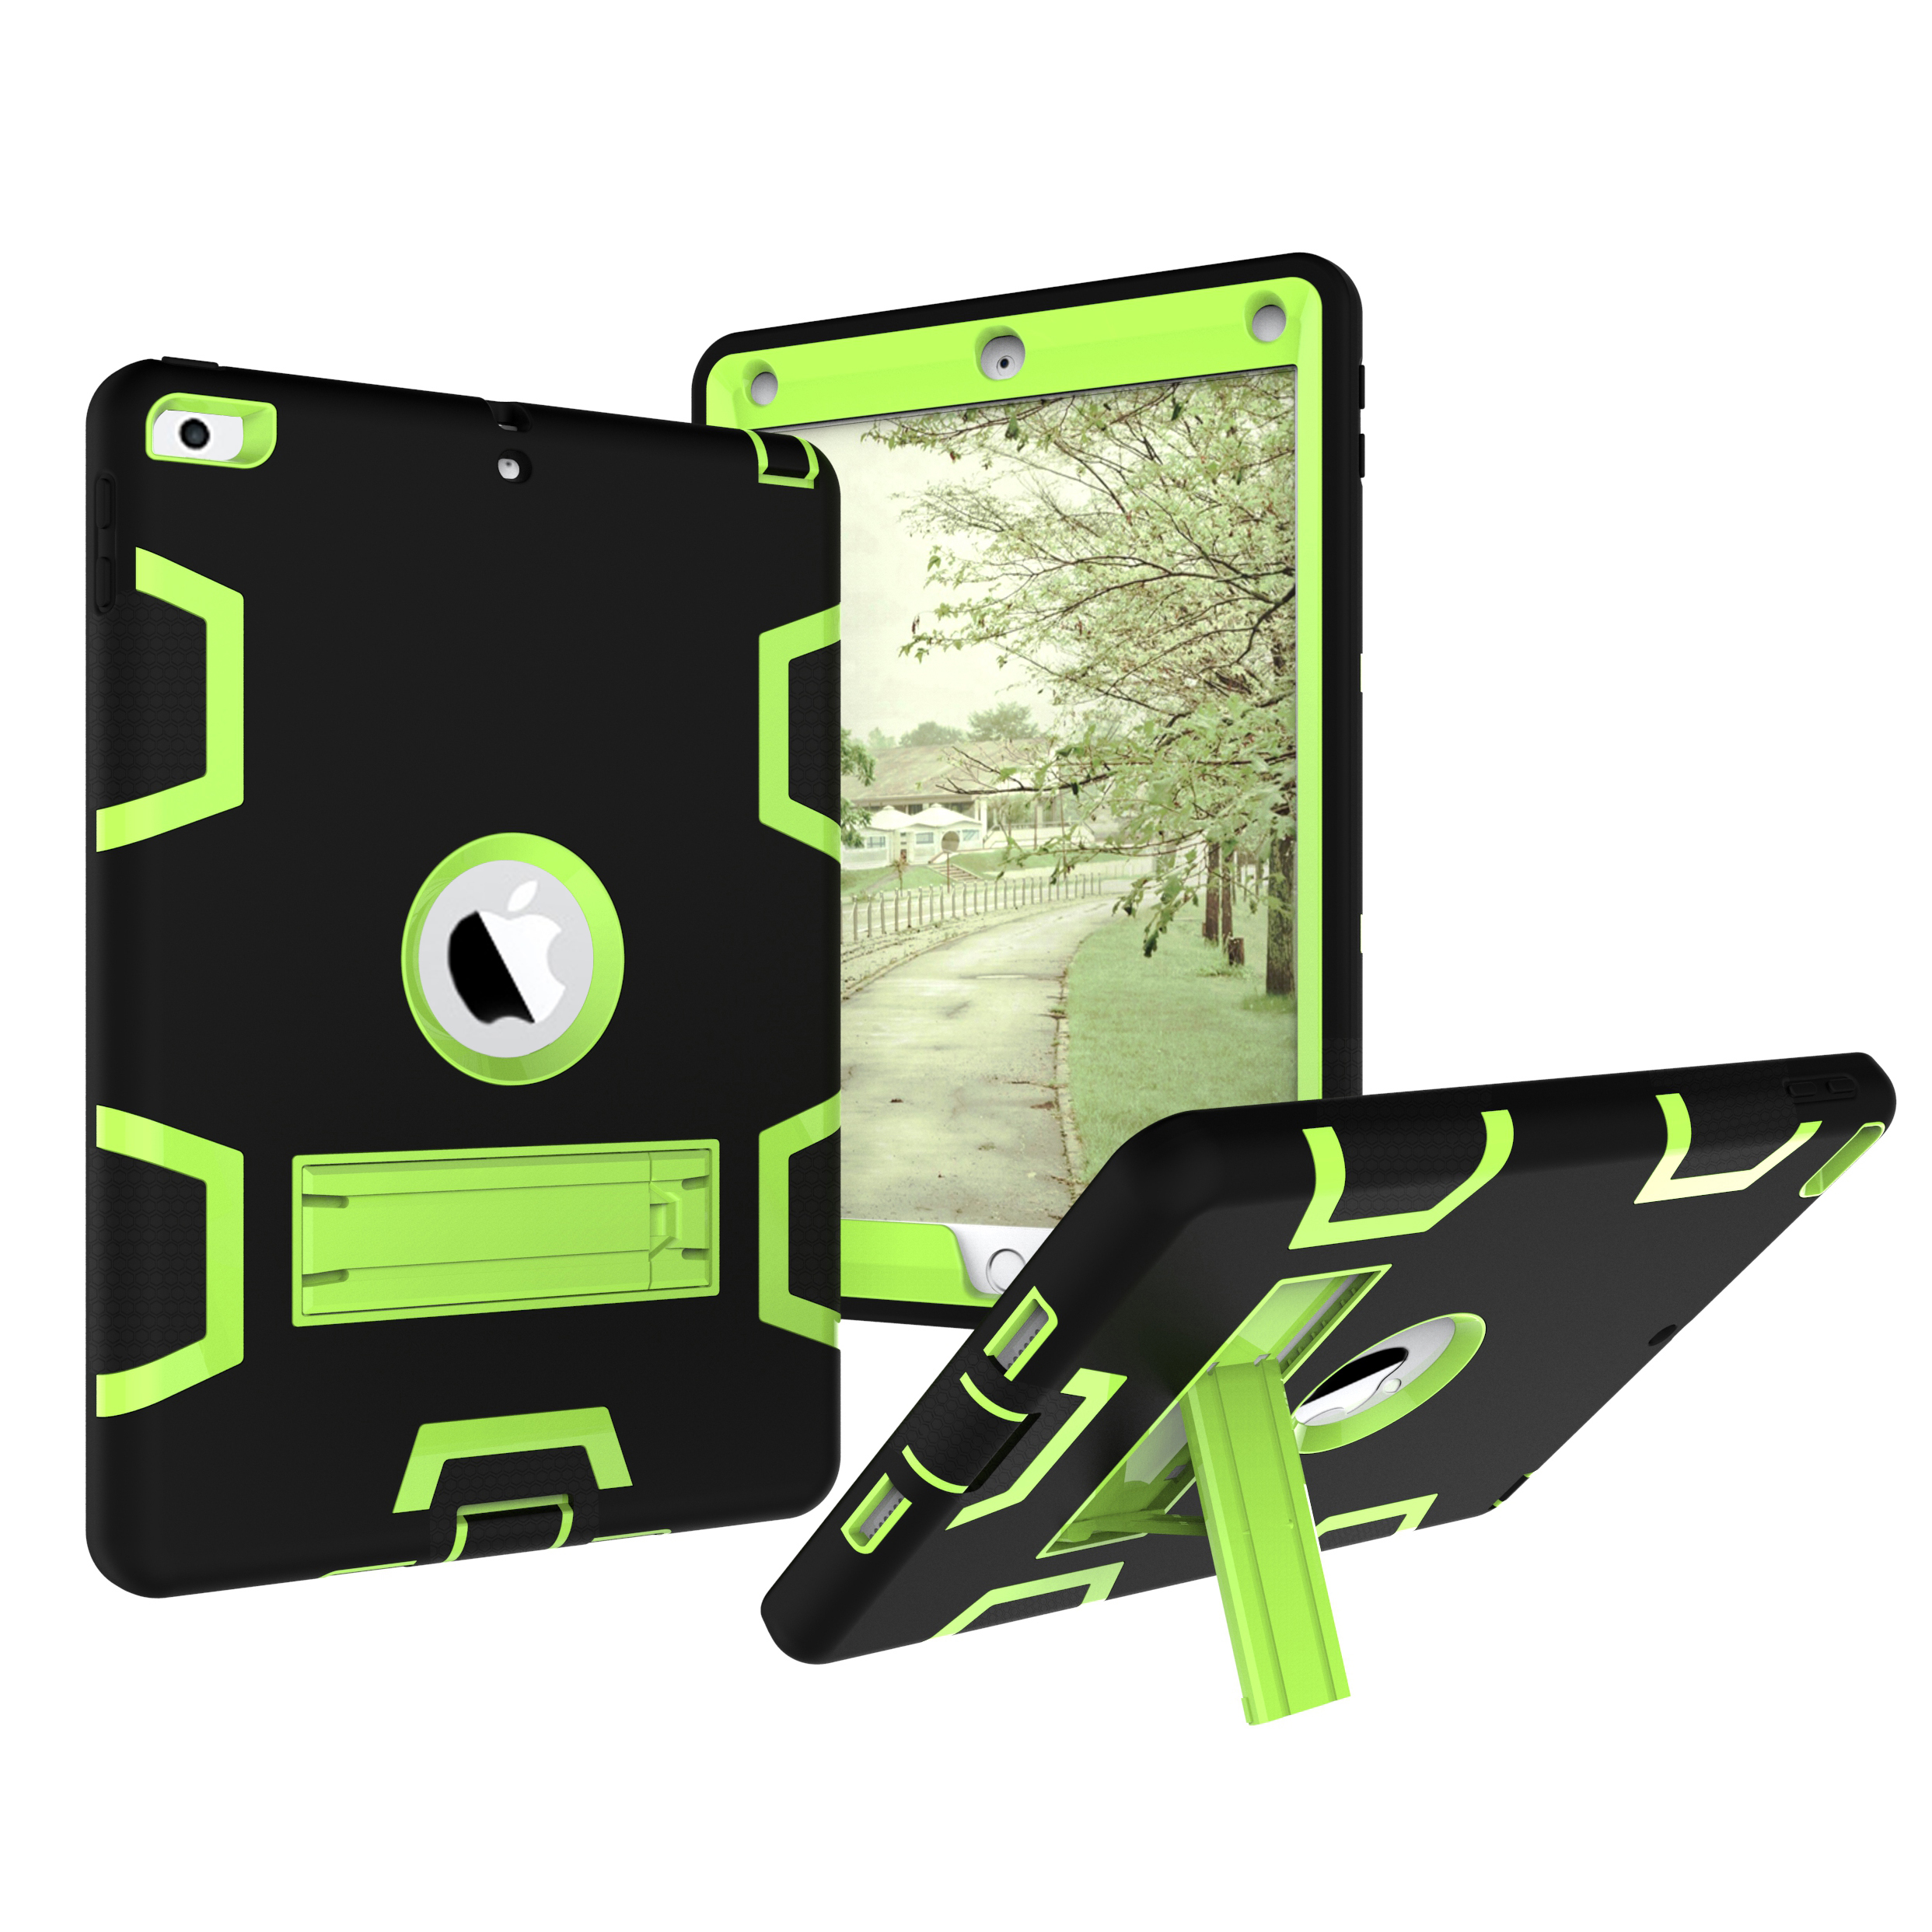 iPad mini 4 Kids Case, Goodest Dural Layer Design Shockproof Build-in Stand Armor Defender Rugged Heavy Duty Protection Child Toddler Friendly Cover Shell for Apple iPad mini 4th Gen, Green+Black